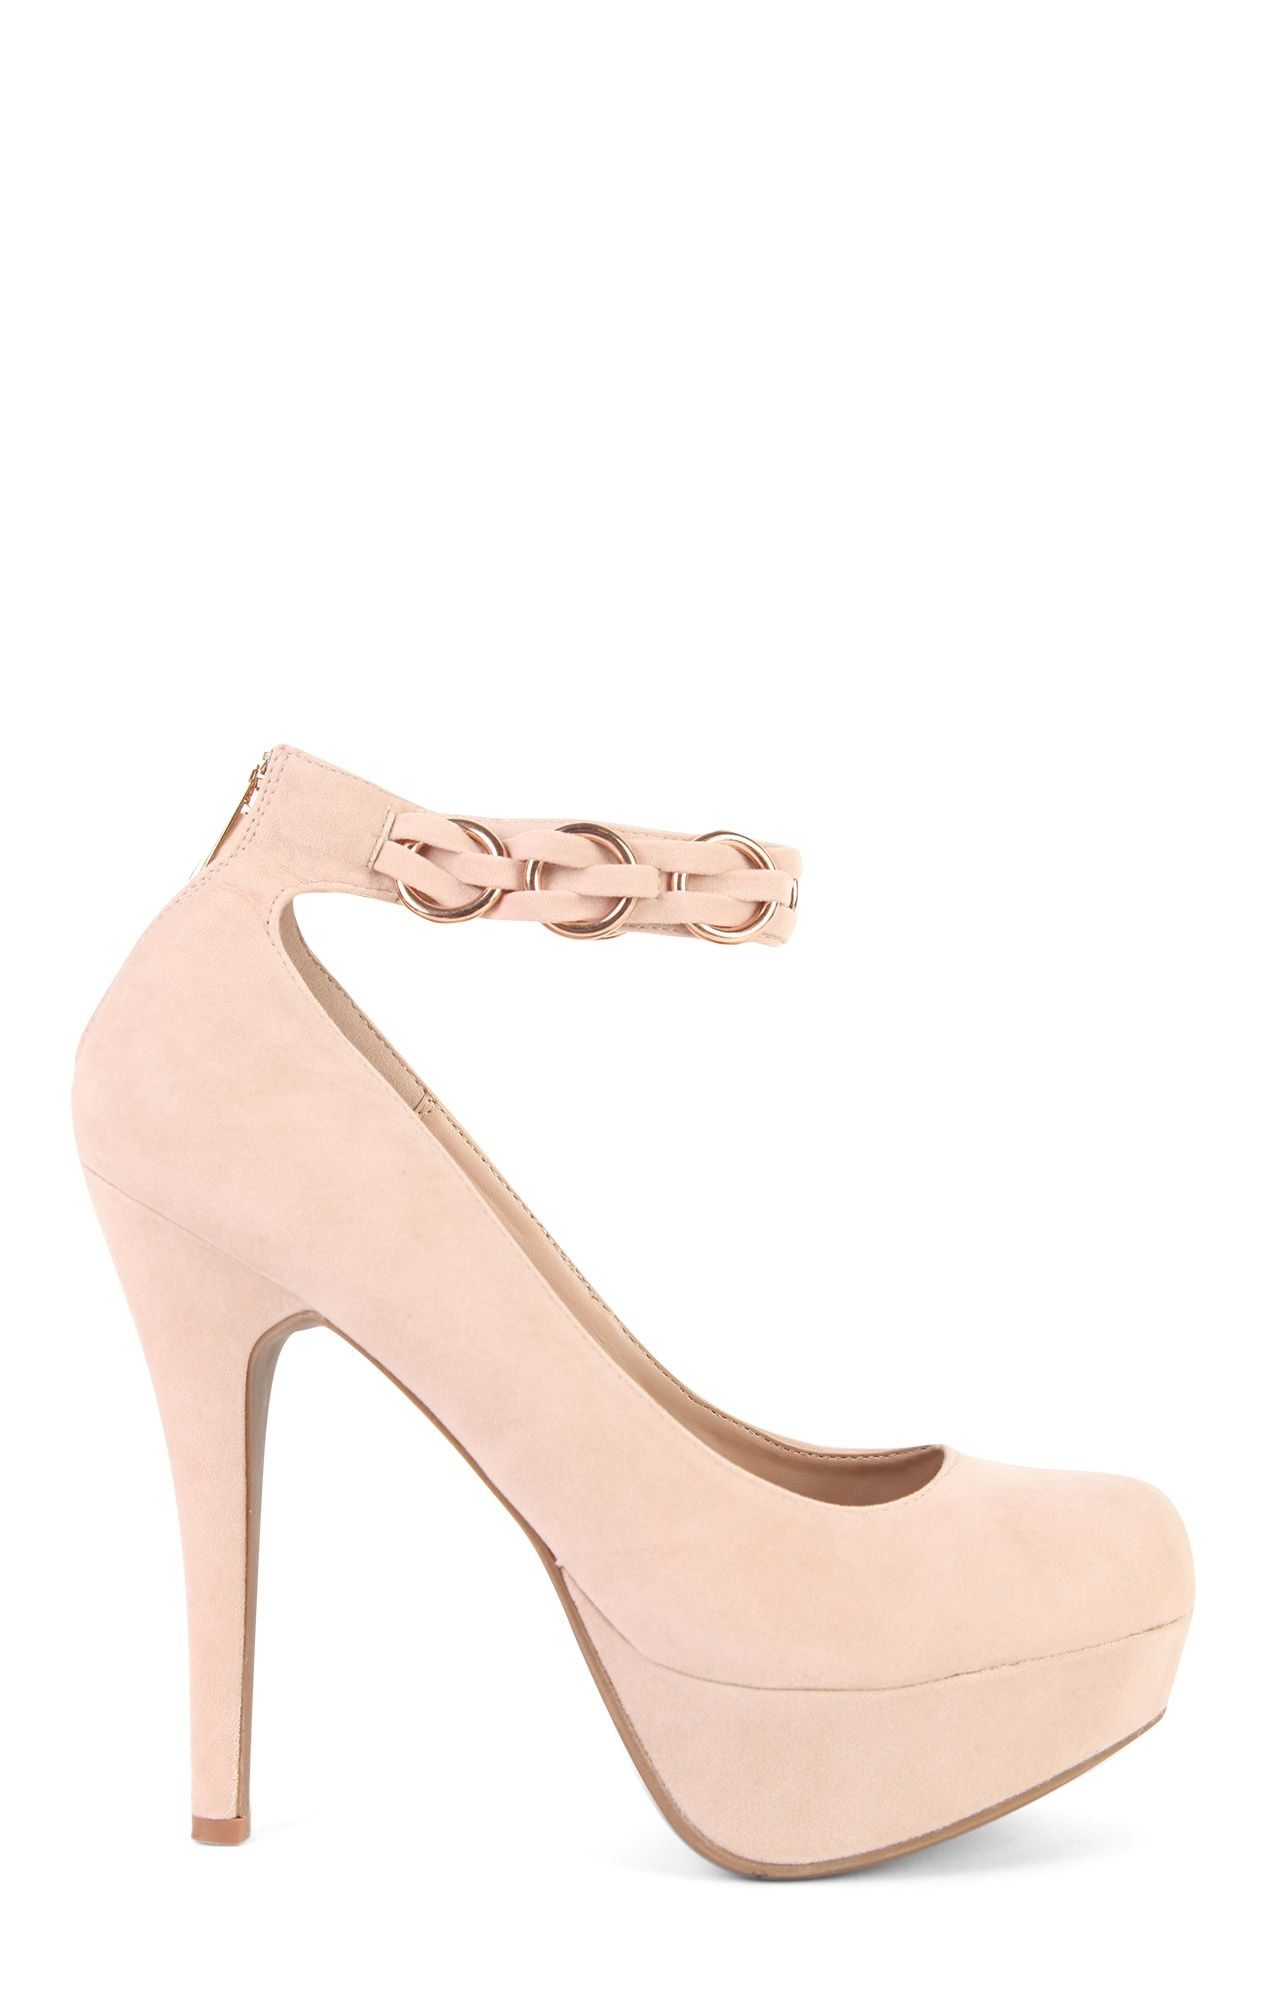 SugarPair Nude Platform Pumps with Chain Ankle Strap and Zipper Back $21.90